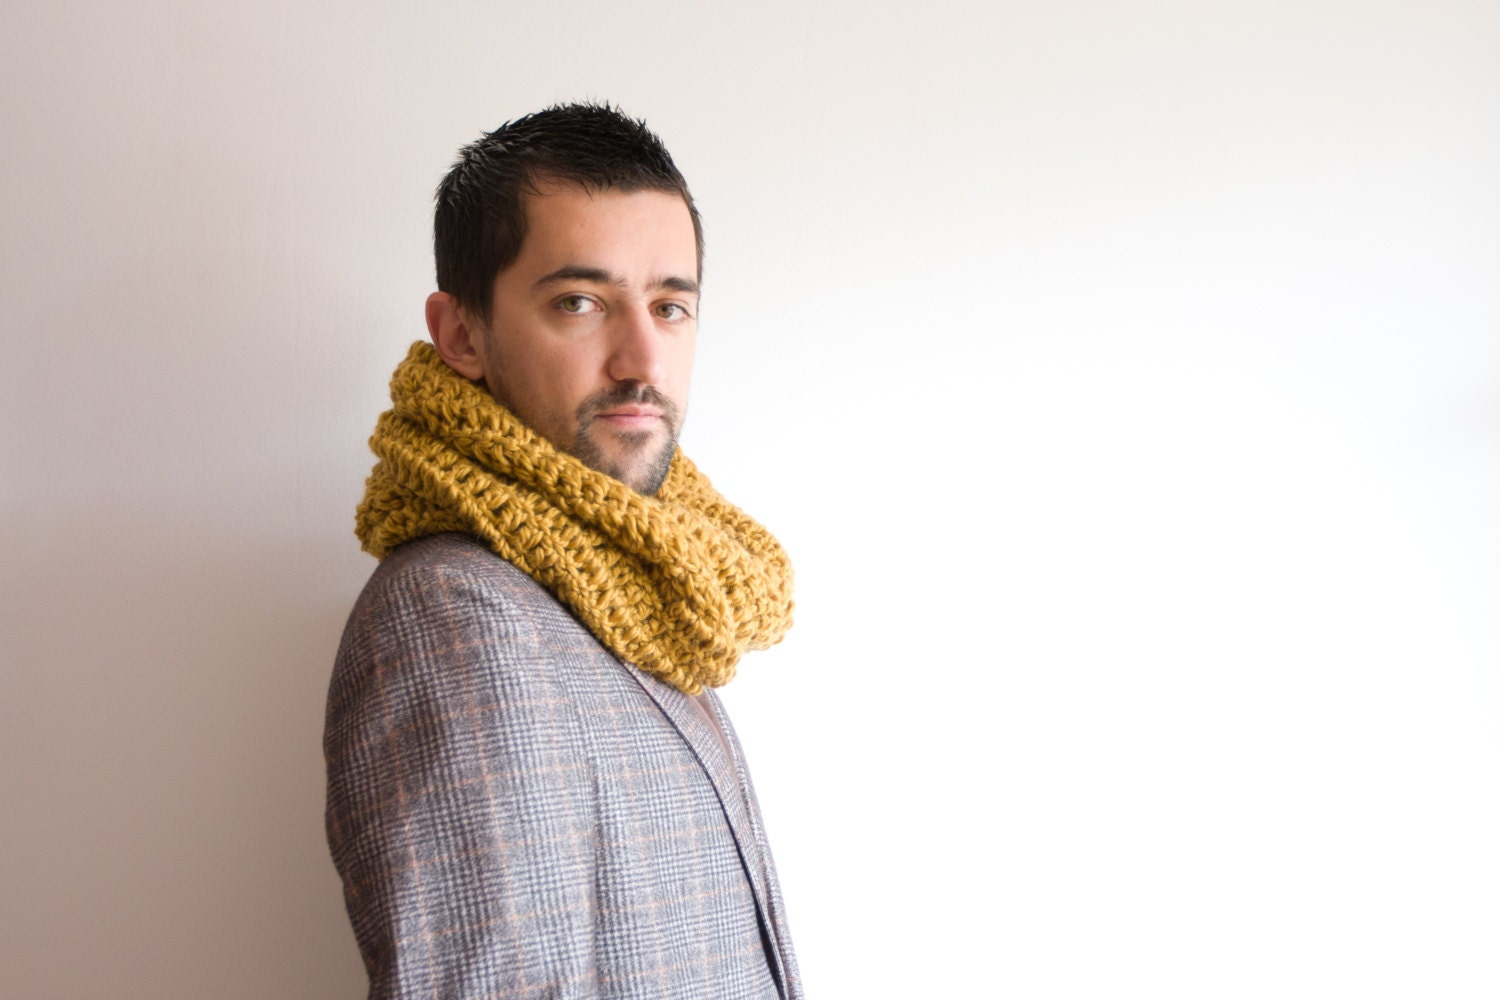 Large Infinity Scarf - Unisex, Crochet Cowl Scarf, Winter Hooded ...